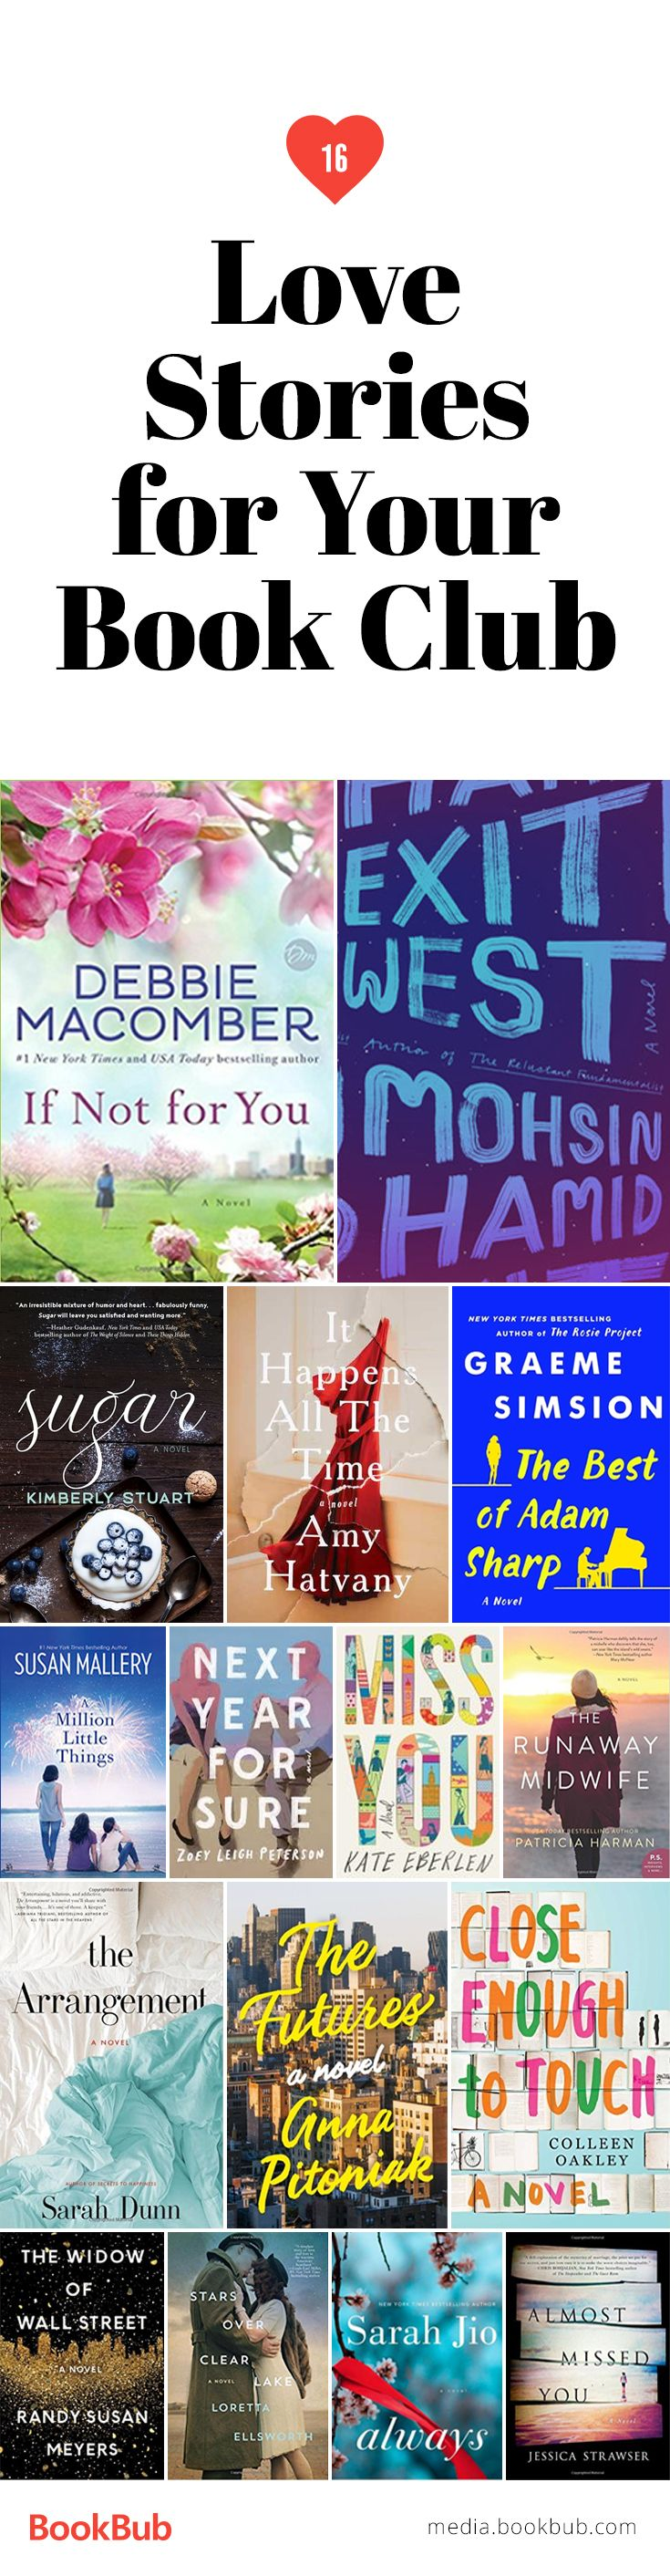 16 book club ideas for women, featuring romantic books about complicated love stories. These include some of the must read books of 2017.